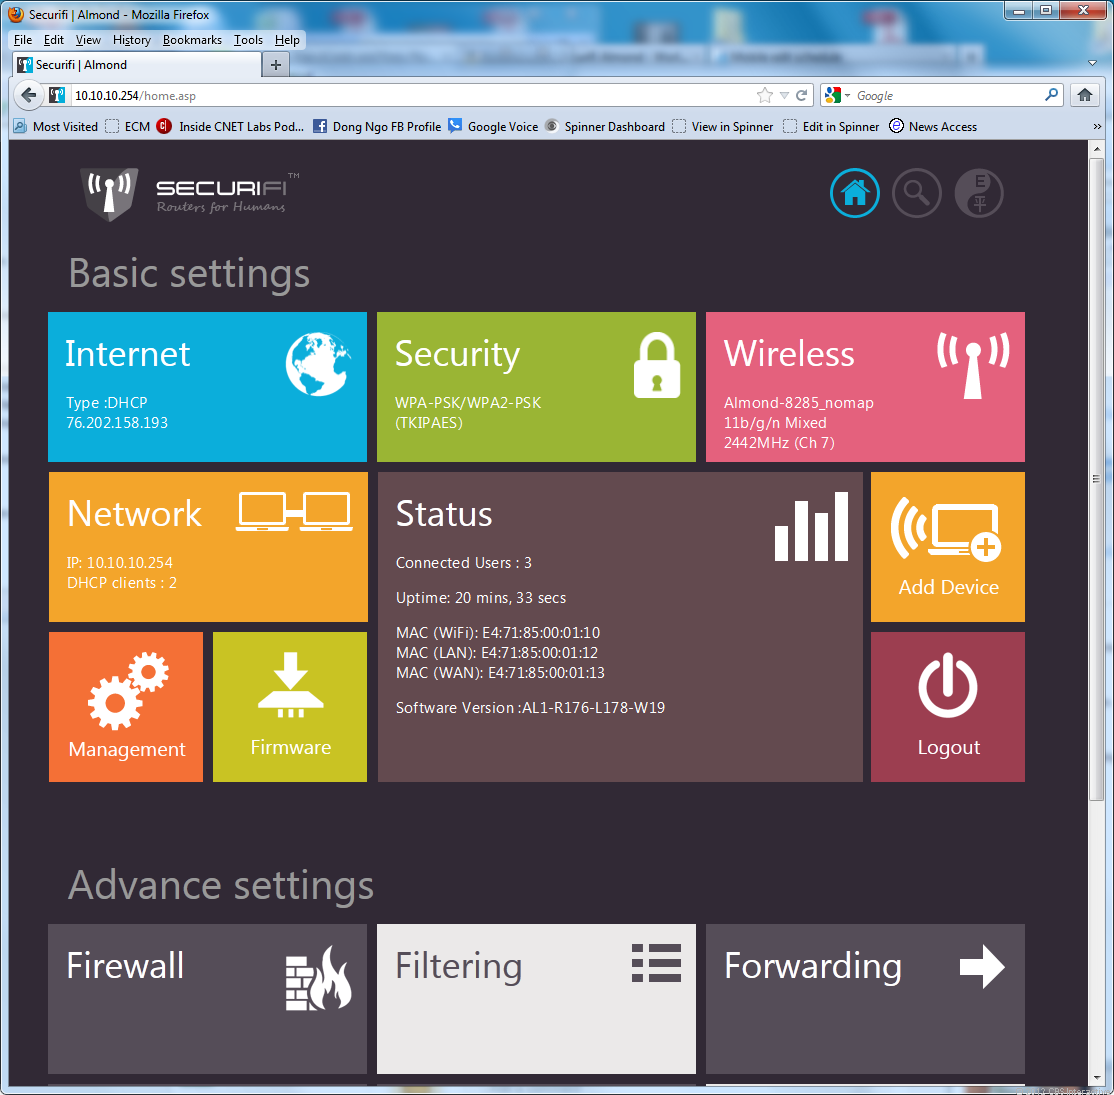 The Almond's interface resemble the Metro interface of Windows 8.